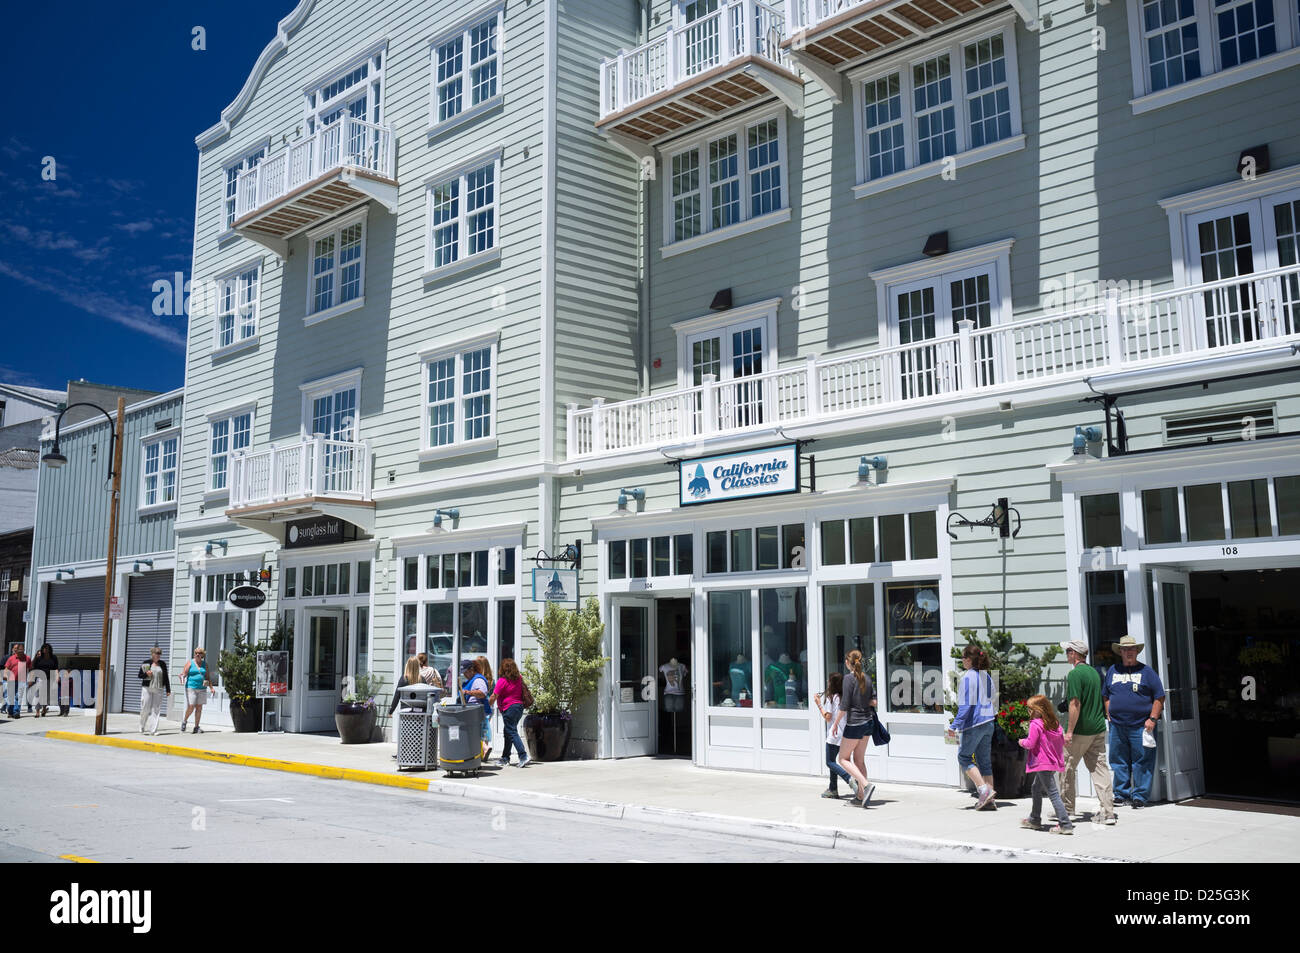 Cannery Row Monterey Bay waterfront - Stock Image